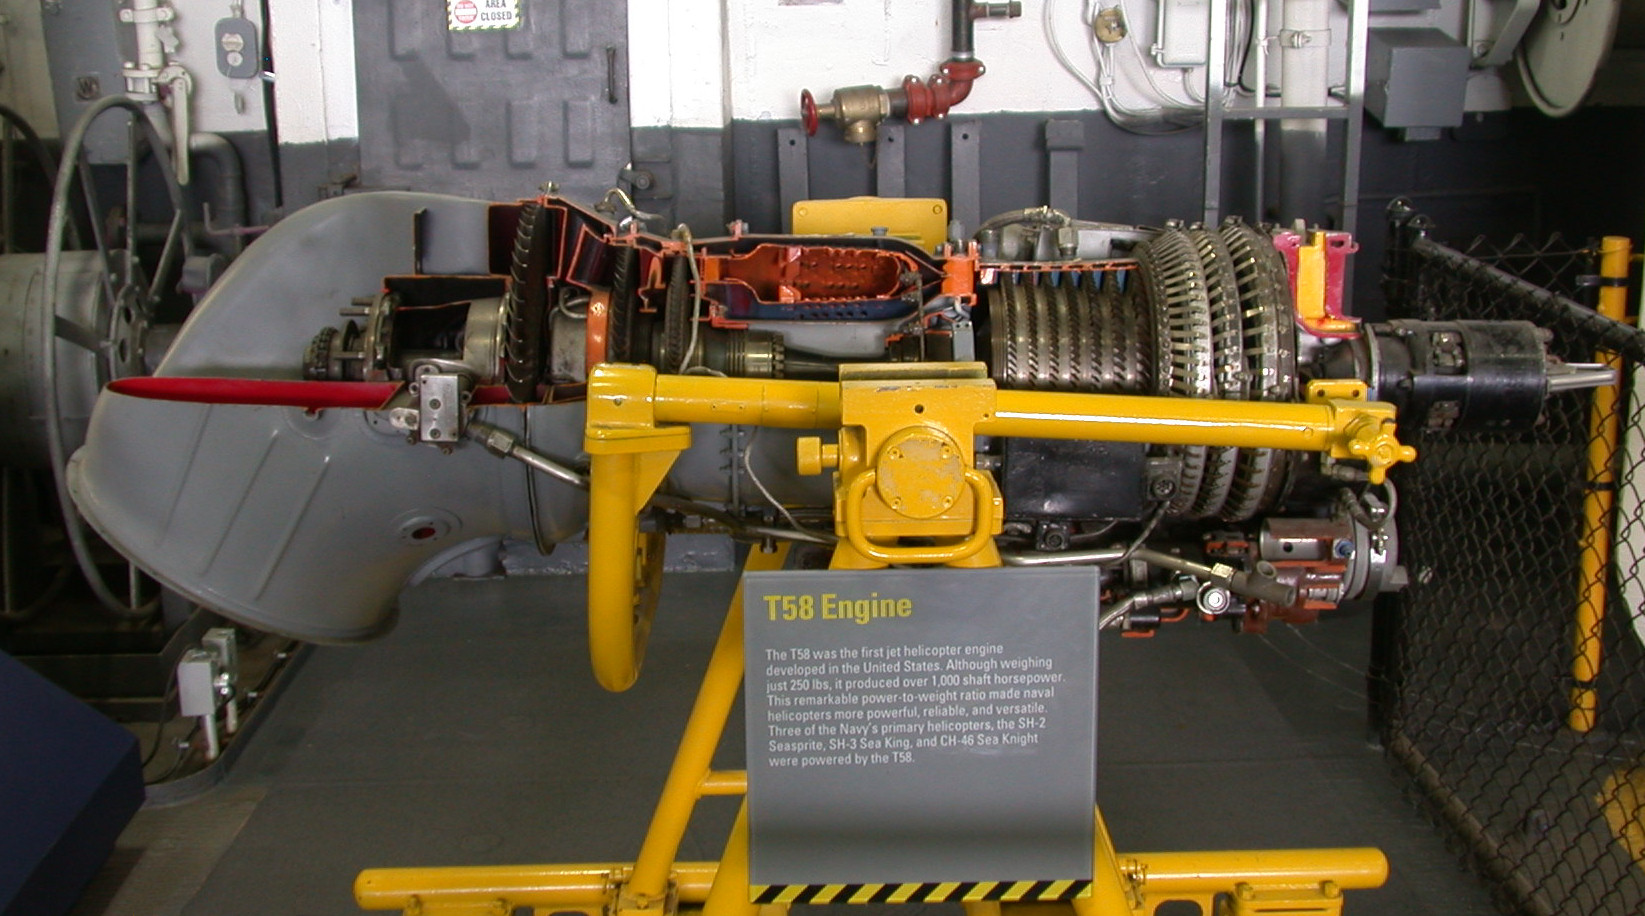 General Electric T58